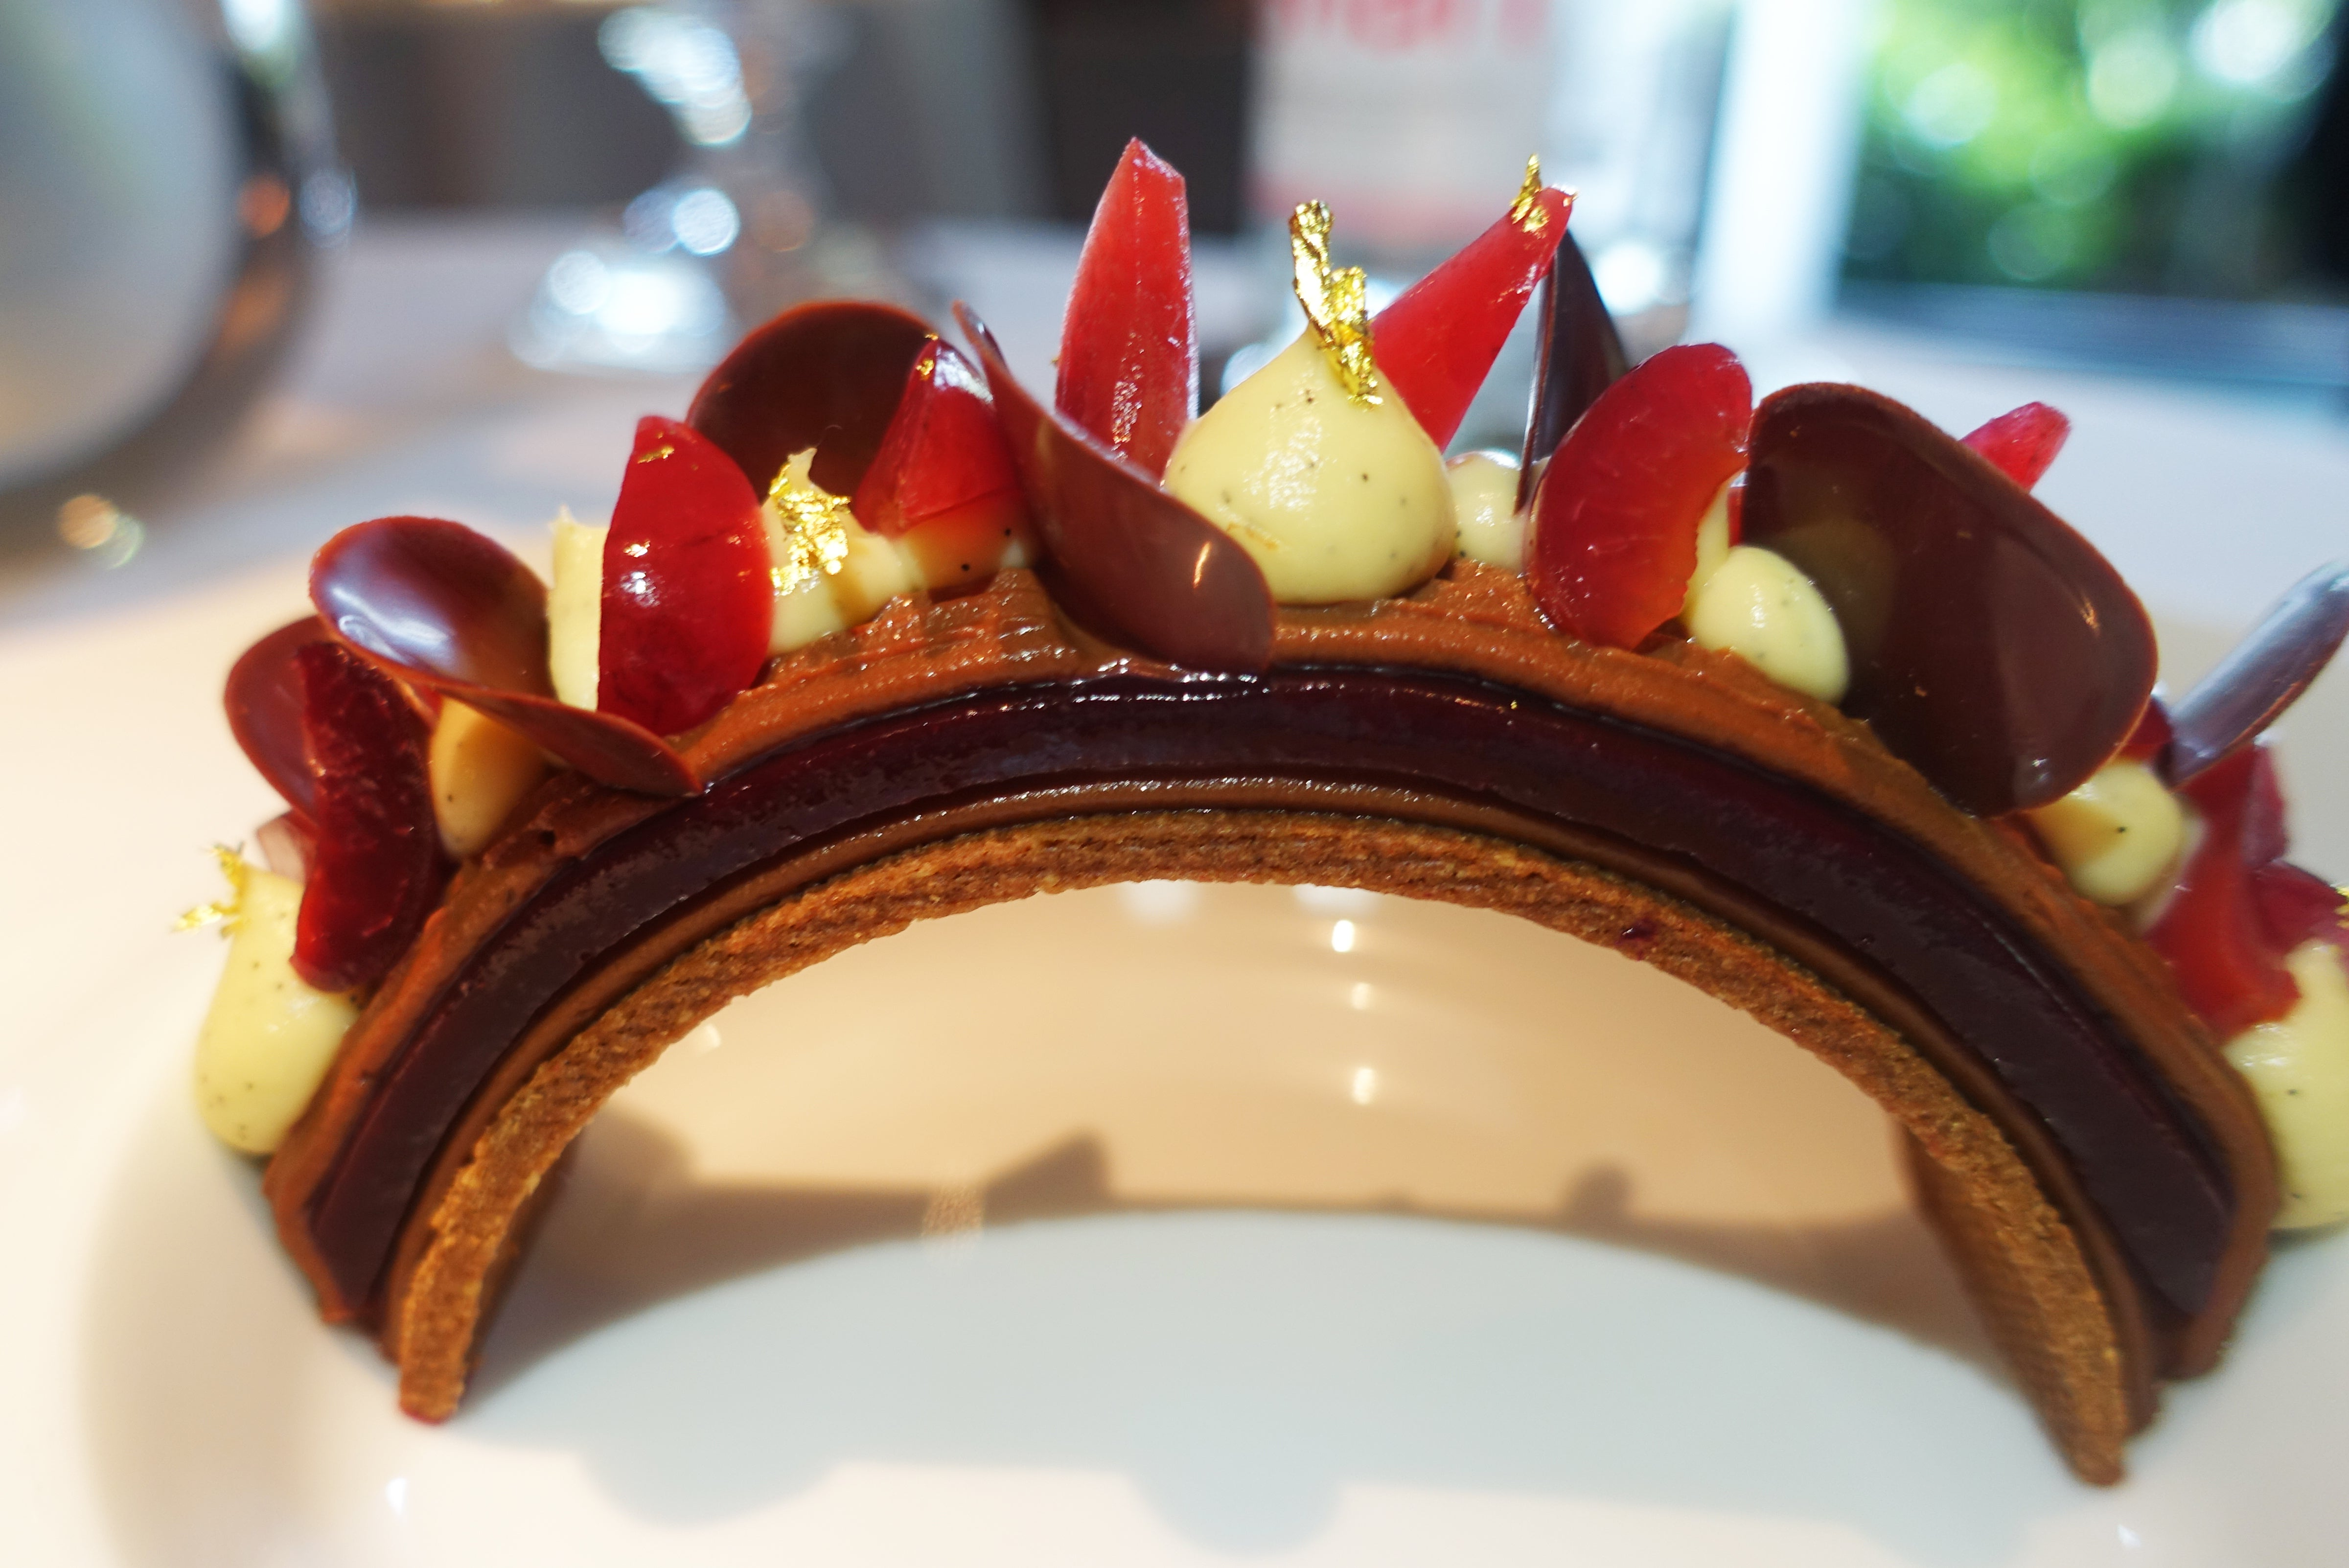 The 12 Best Fine Dining Dishes Of 2017 Elite Traveler Mille Shopia Top Creme Year When Michelin Introduced Their Multi Star System So This Is A Restaurant With Considerable Culinary History Anne Sophie Pic Regained Those